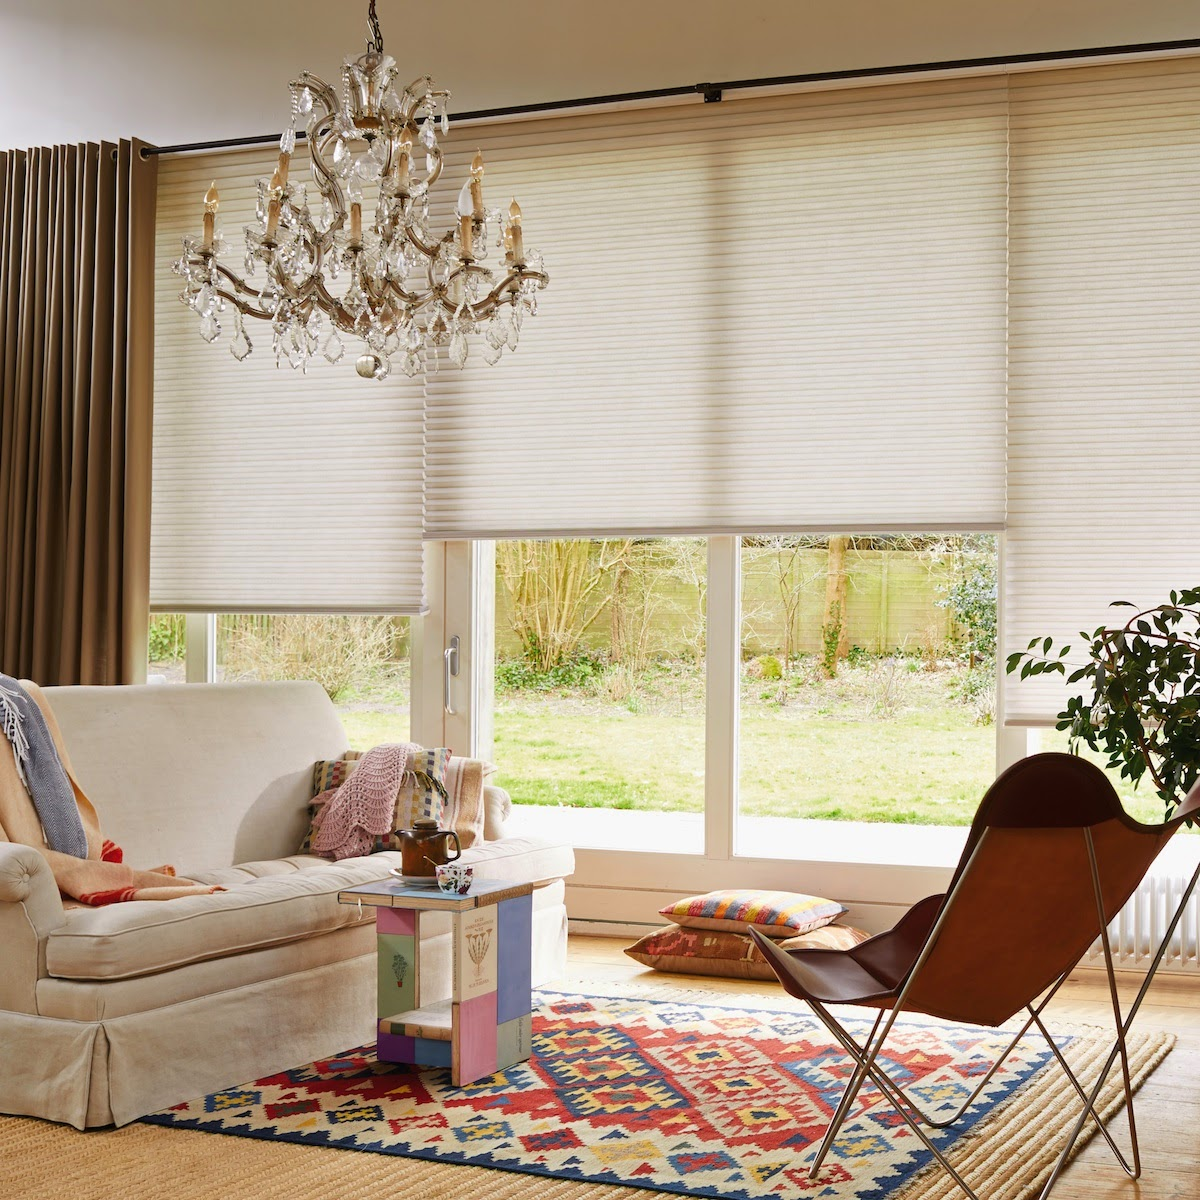 Energy saving ideas for your home all year round the for Interieur advies